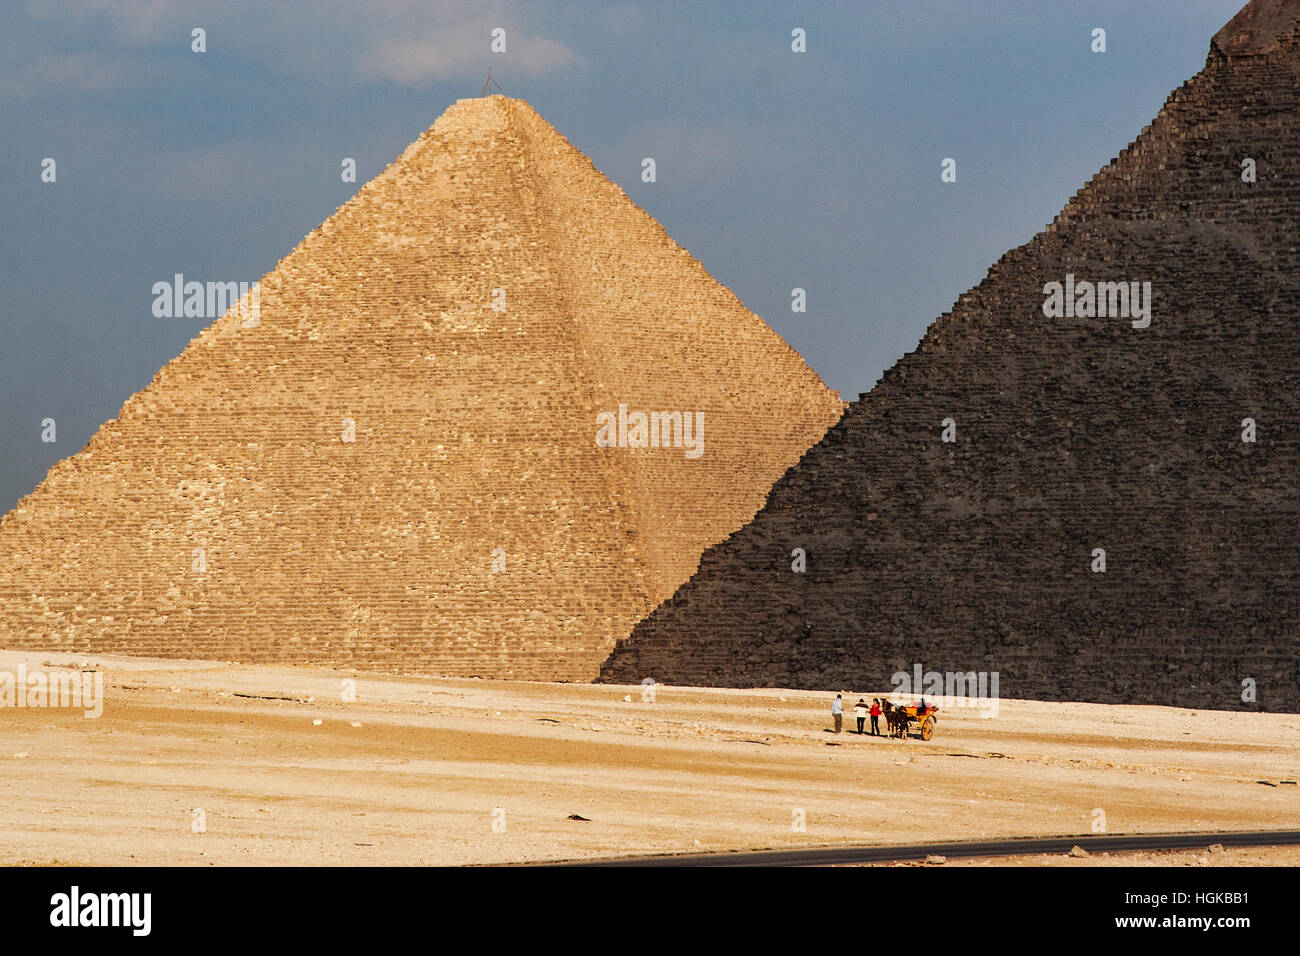 The pyramids of Giza is in southwest part of Cairo is a popular tourist destination. Tours by camel are popular - Stock Image